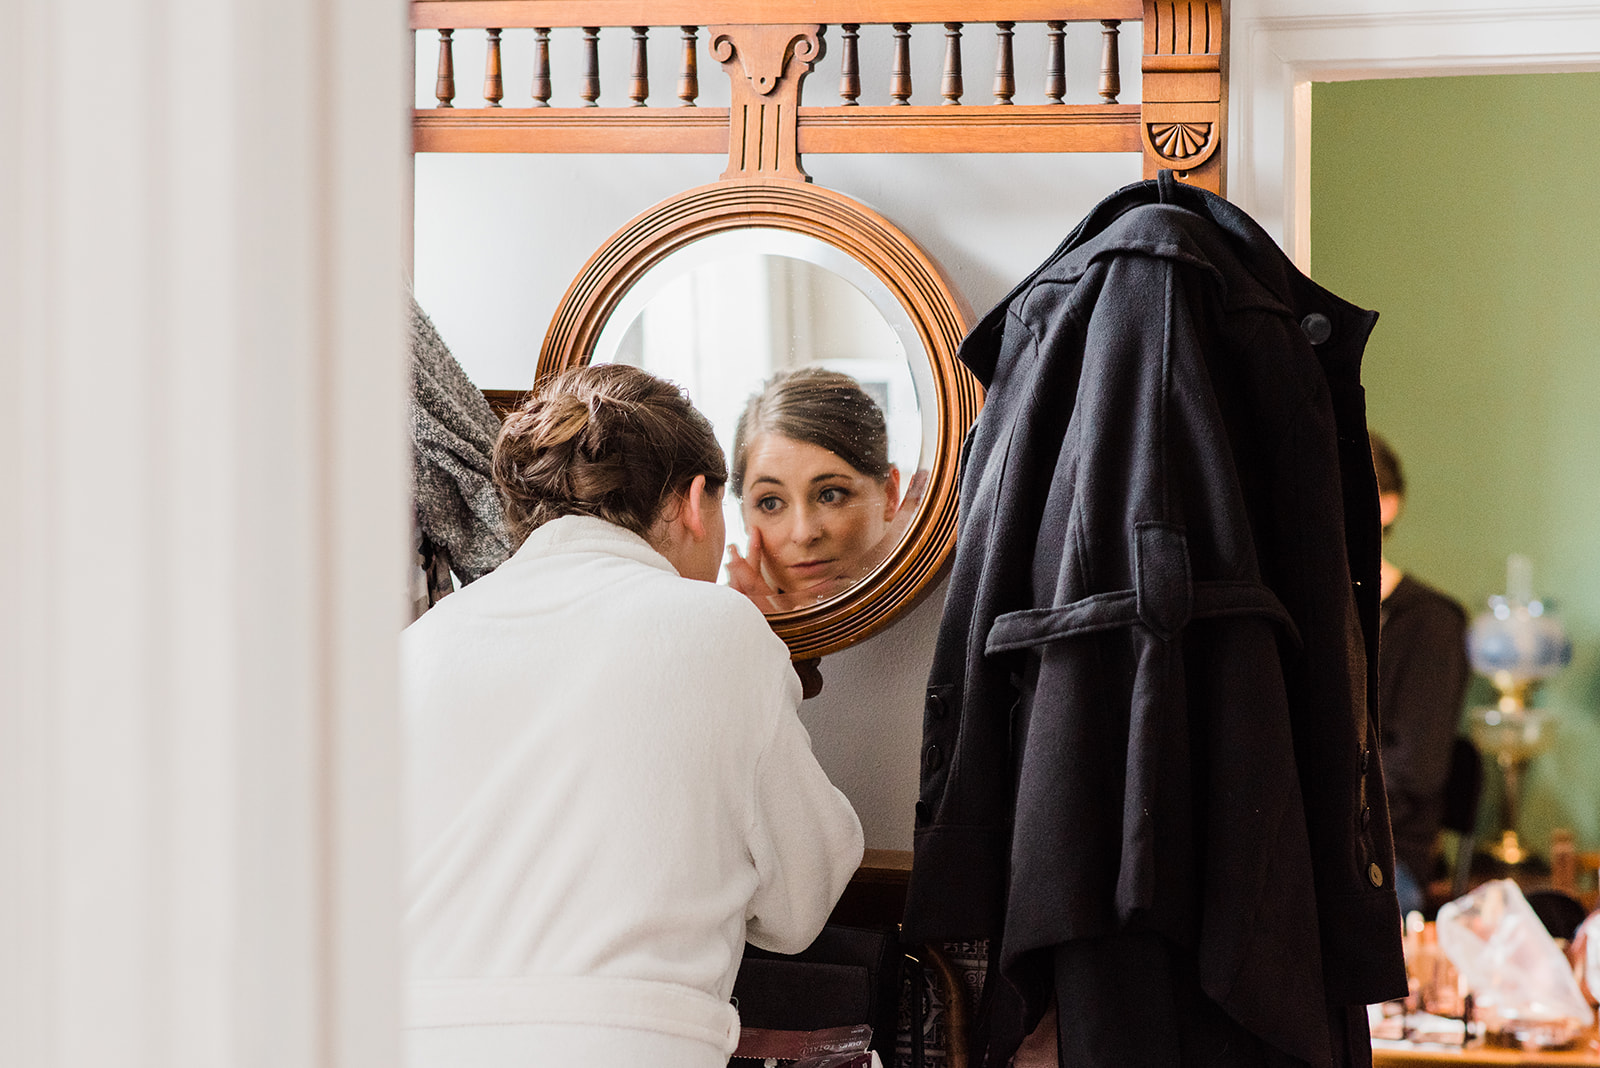 Fixing make up in the mirror